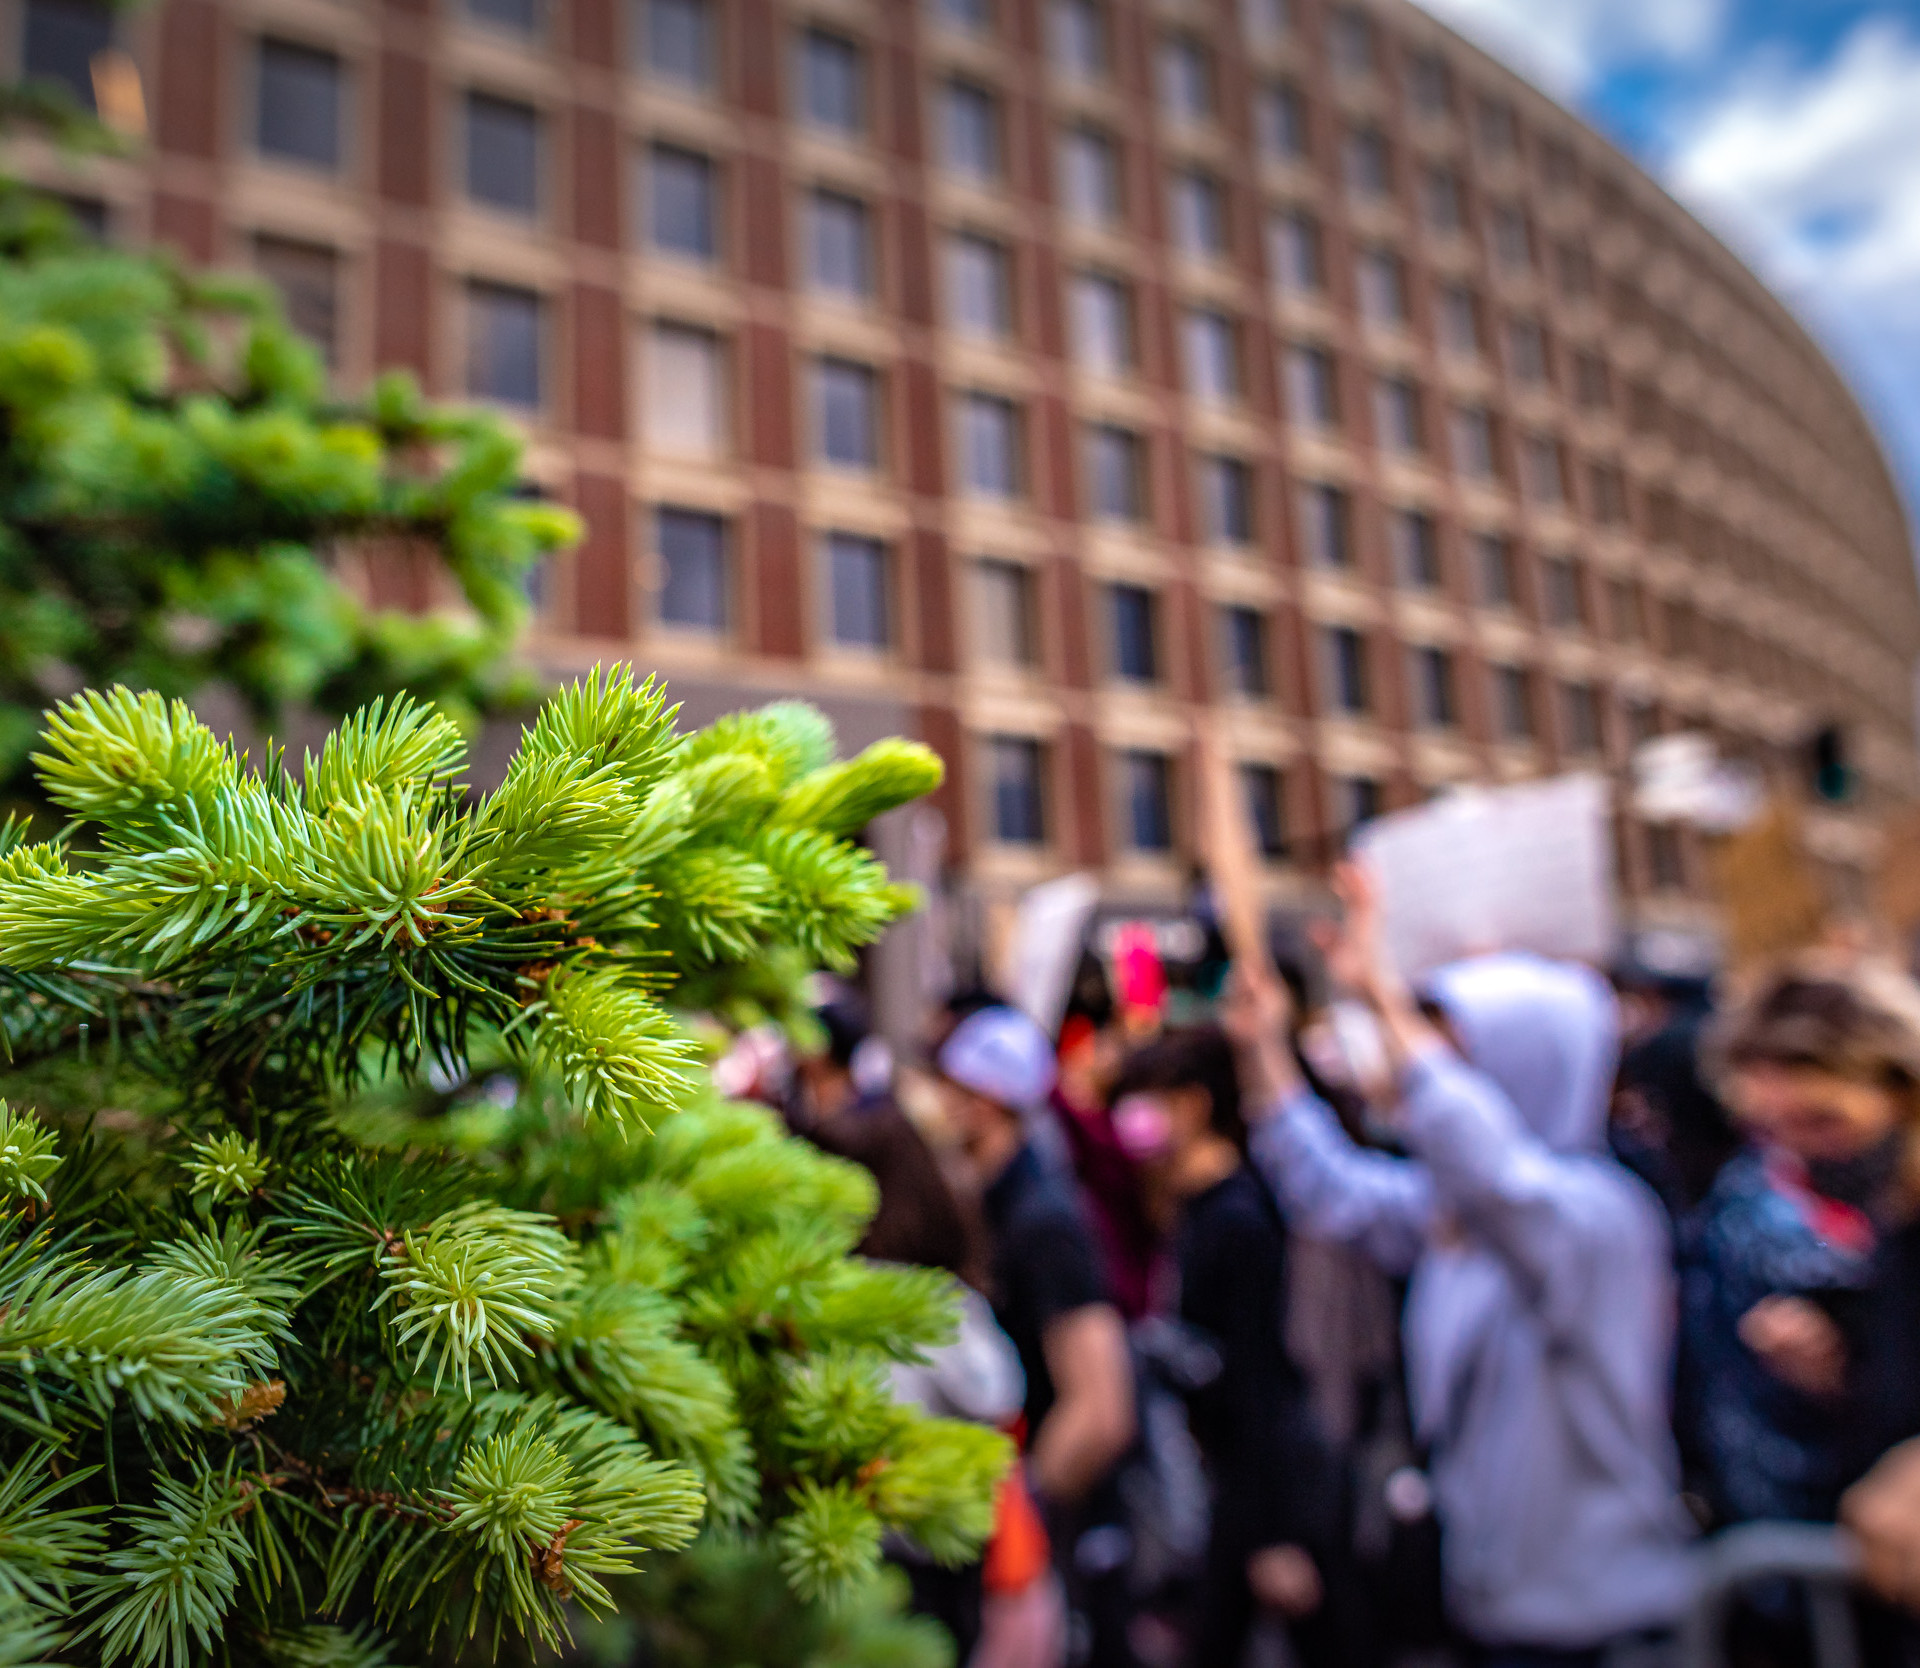 A little macro wide angle protest, from the perspective of an evergreen.